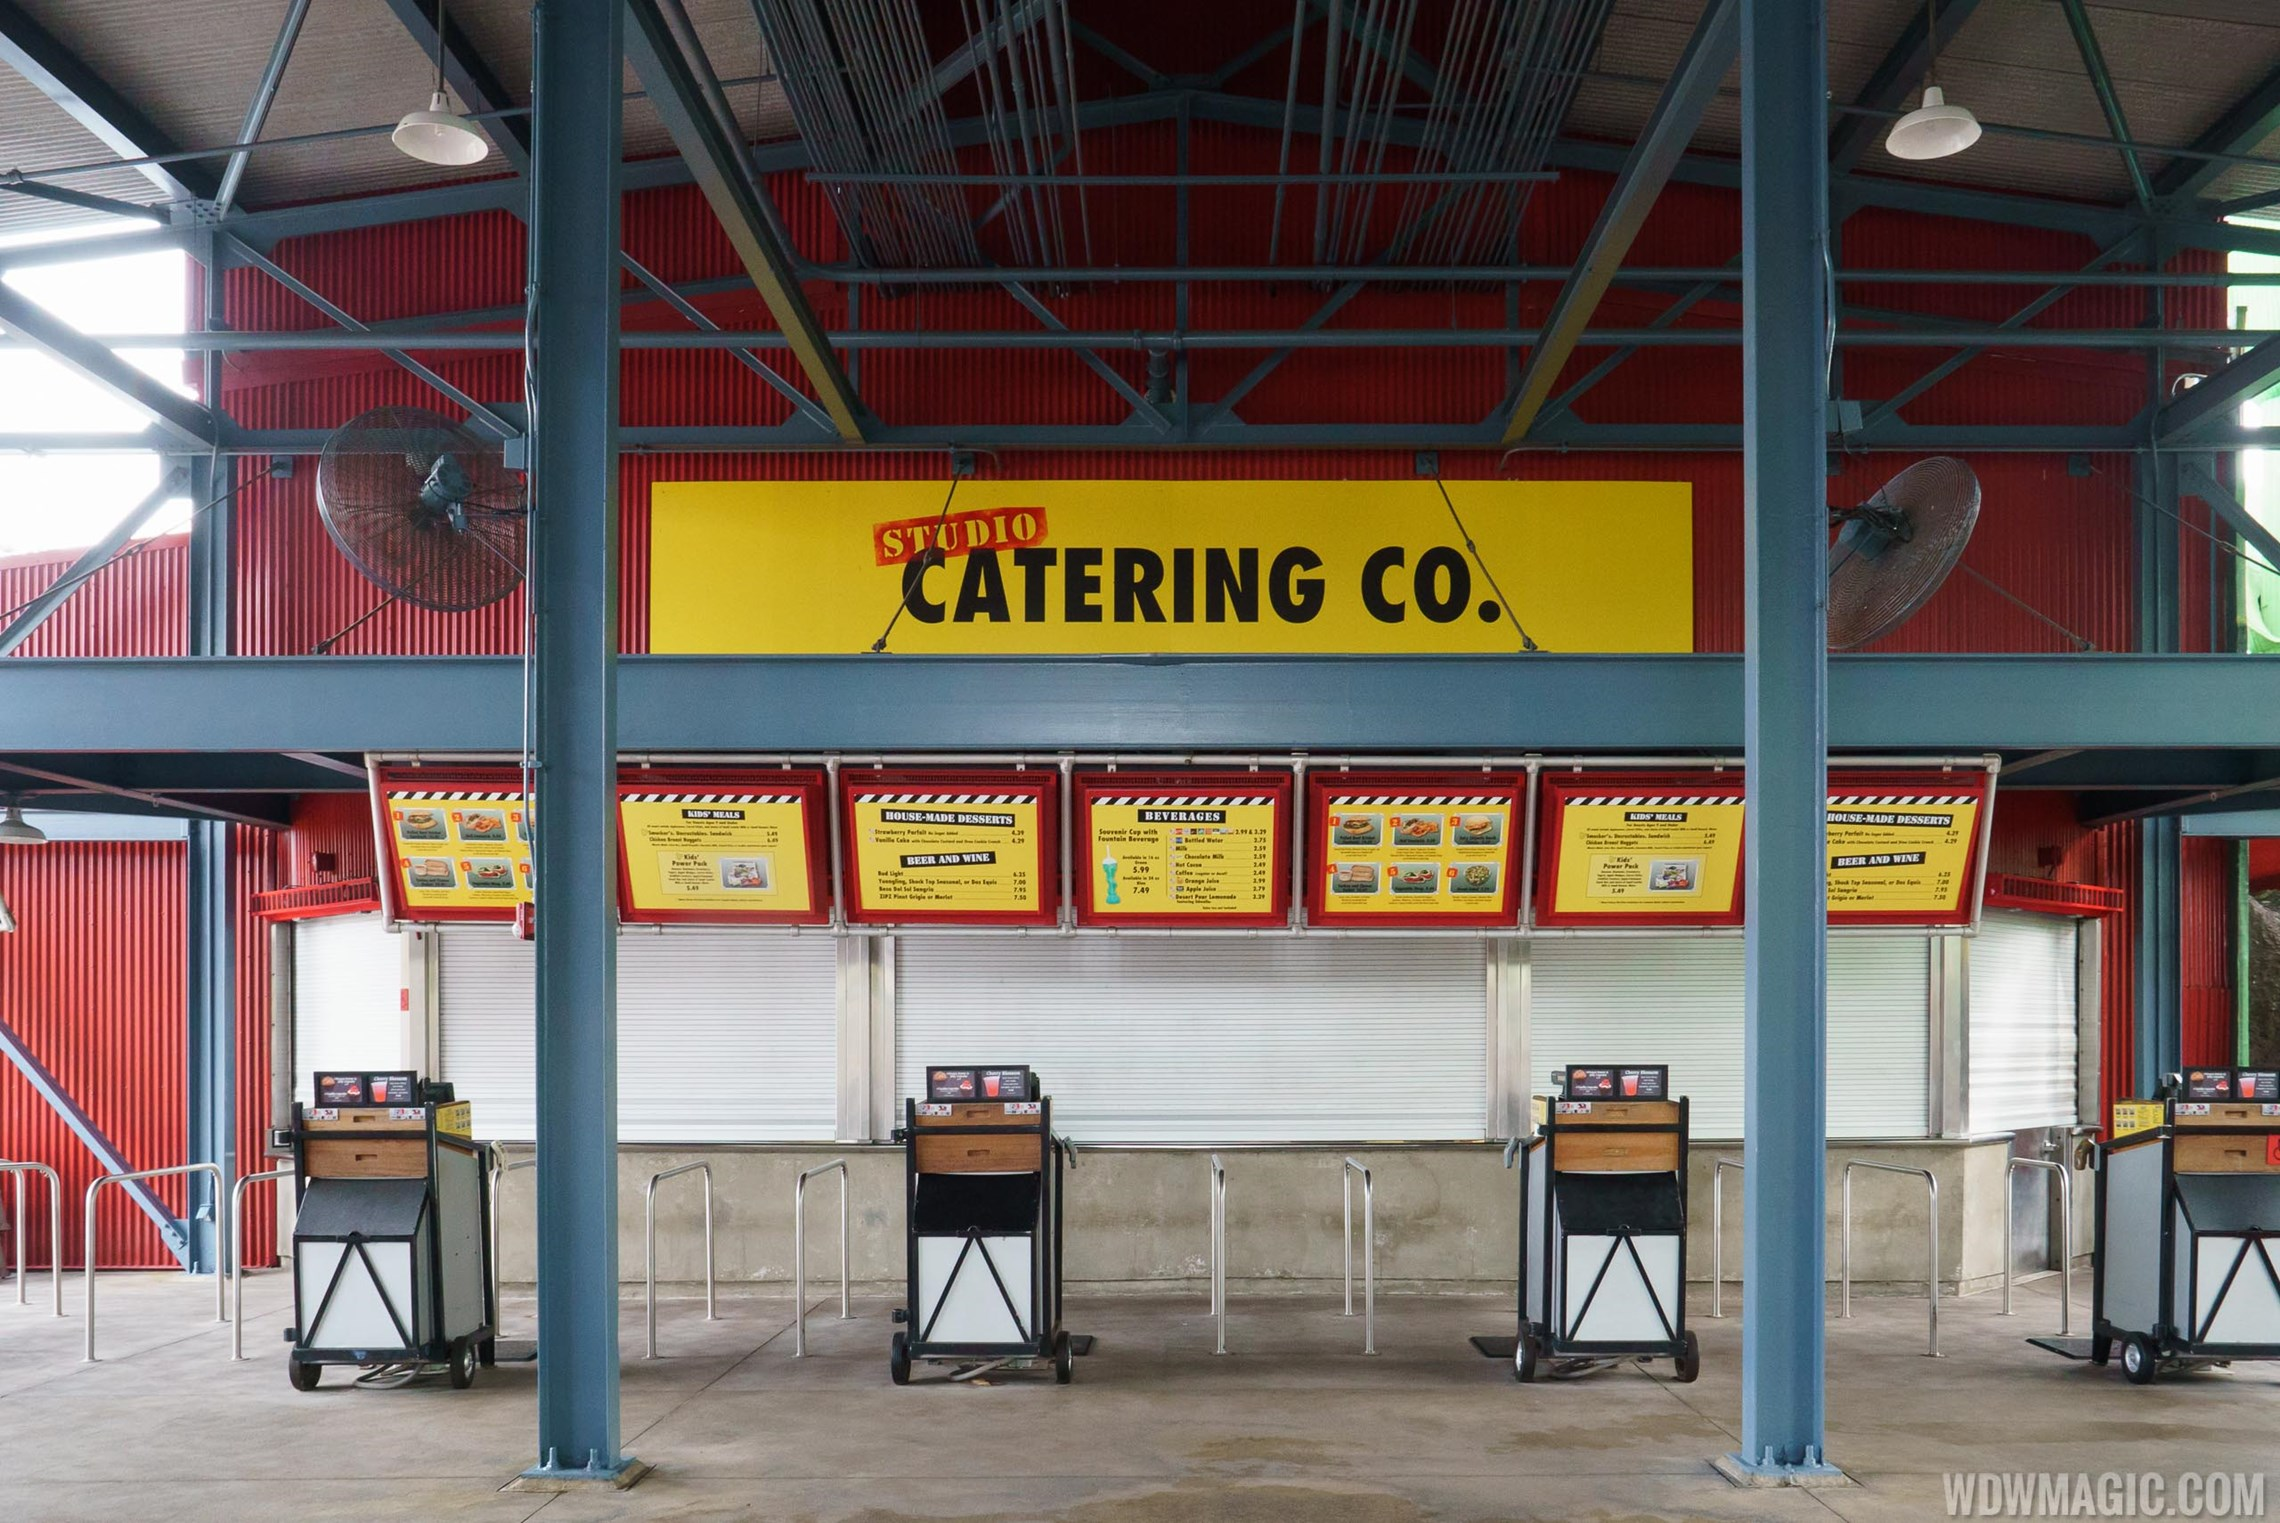 Studio Catering Co. overview